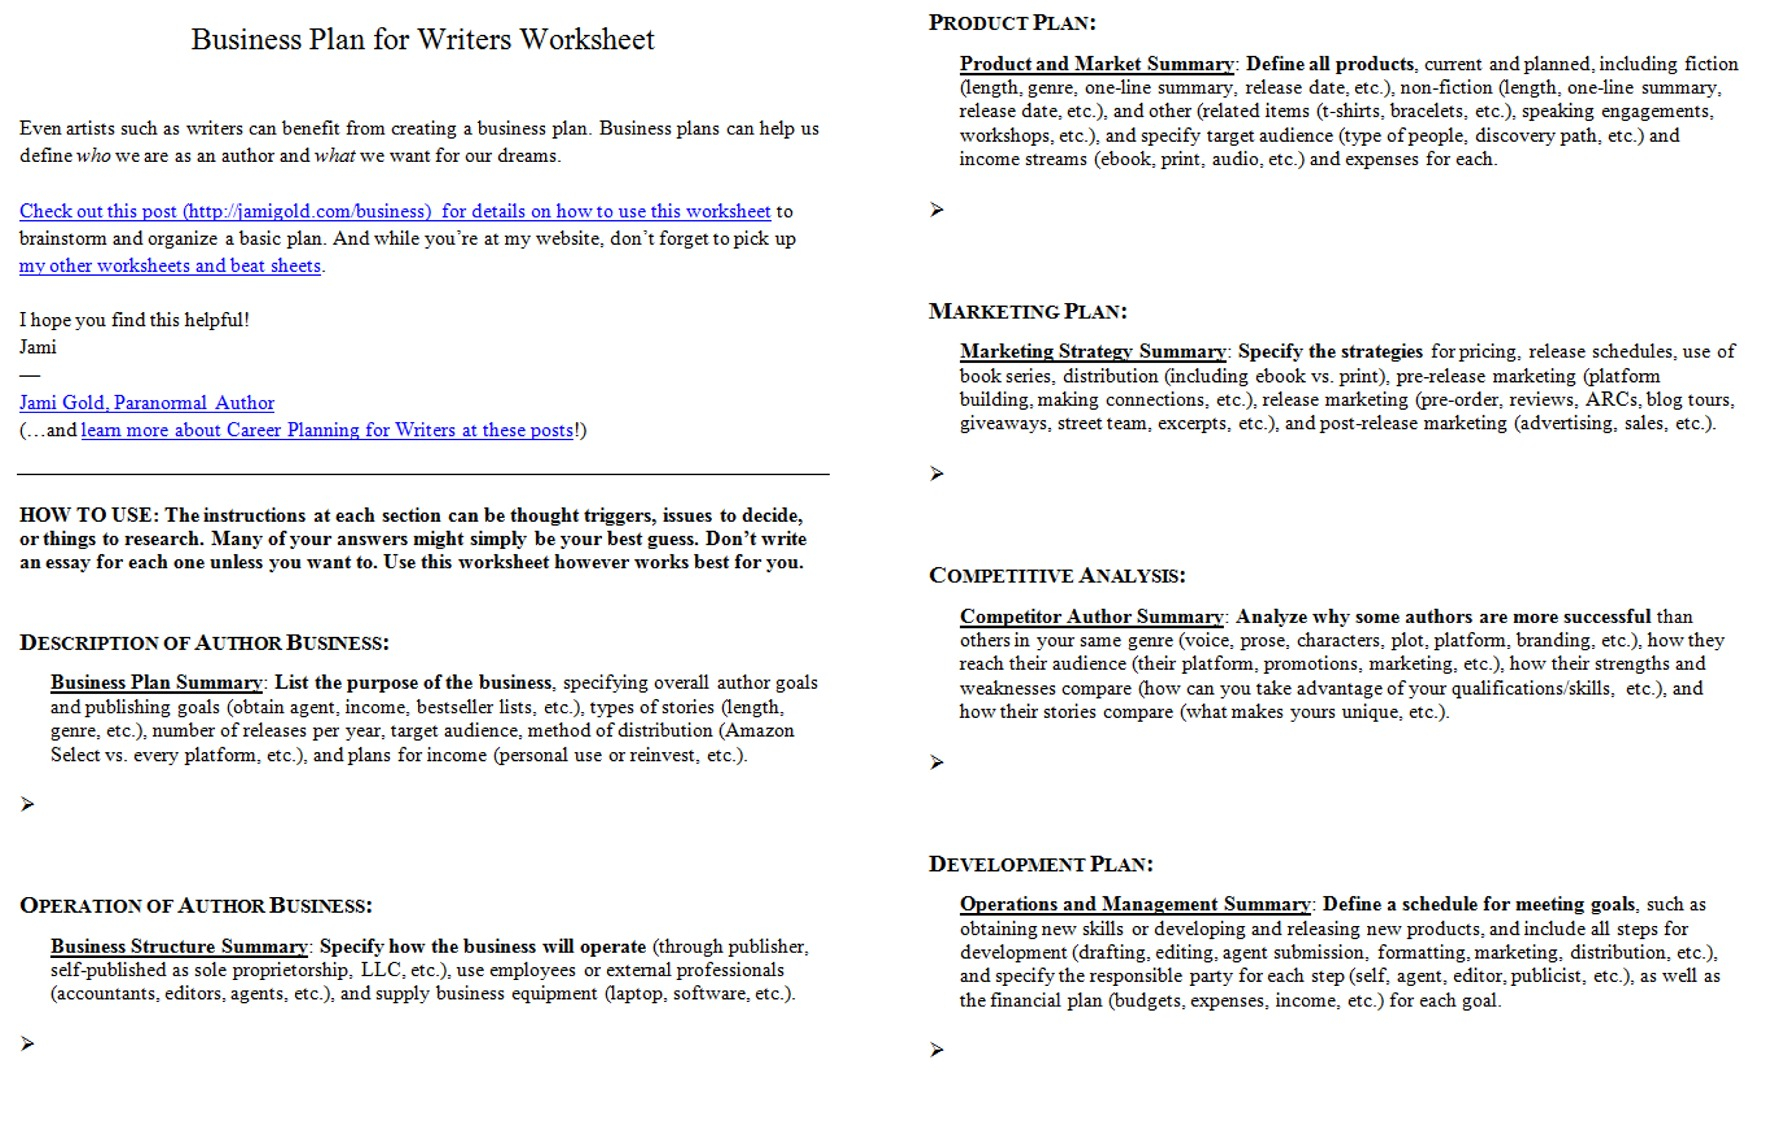 Proatmealus  Pretty Worksheets For Writers  Jami Gold Paranormal Author With Foxy Screen Shot Of Both Pages Of The Business Plan For Writers Worksheet With Captivating Chemfiesta Worksheet Answers Also Identifying Phrases Worksheet In Addition Union And Intersection Worksheet And Helping Verb Worksheets Rd Grade As Well As Function Machine Worksheets Additionally Kindergarten Math Coloring Worksheets From Jamigoldcom With Proatmealus  Foxy Worksheets For Writers  Jami Gold Paranormal Author With Captivating Screen Shot Of Both Pages Of The Business Plan For Writers Worksheet And Pretty Chemfiesta Worksheet Answers Also Identifying Phrases Worksheet In Addition Union And Intersection Worksheet From Jamigoldcom